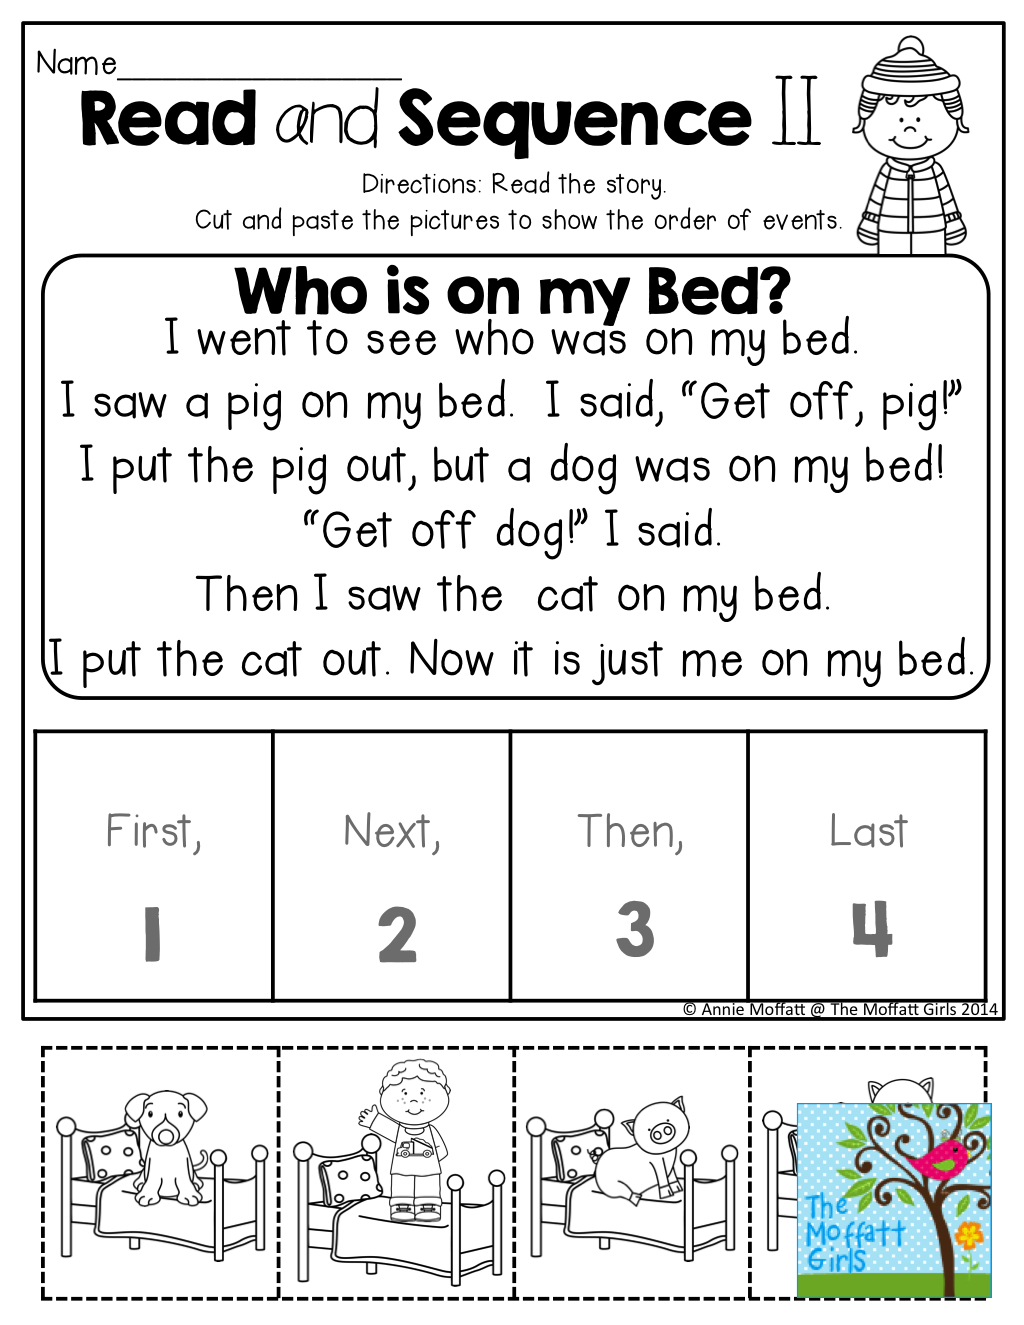 Read And Sequence The Simple Story! Cut And Past The Pictures In - Free Printable Sequencing Worksheets 2Nd Grade